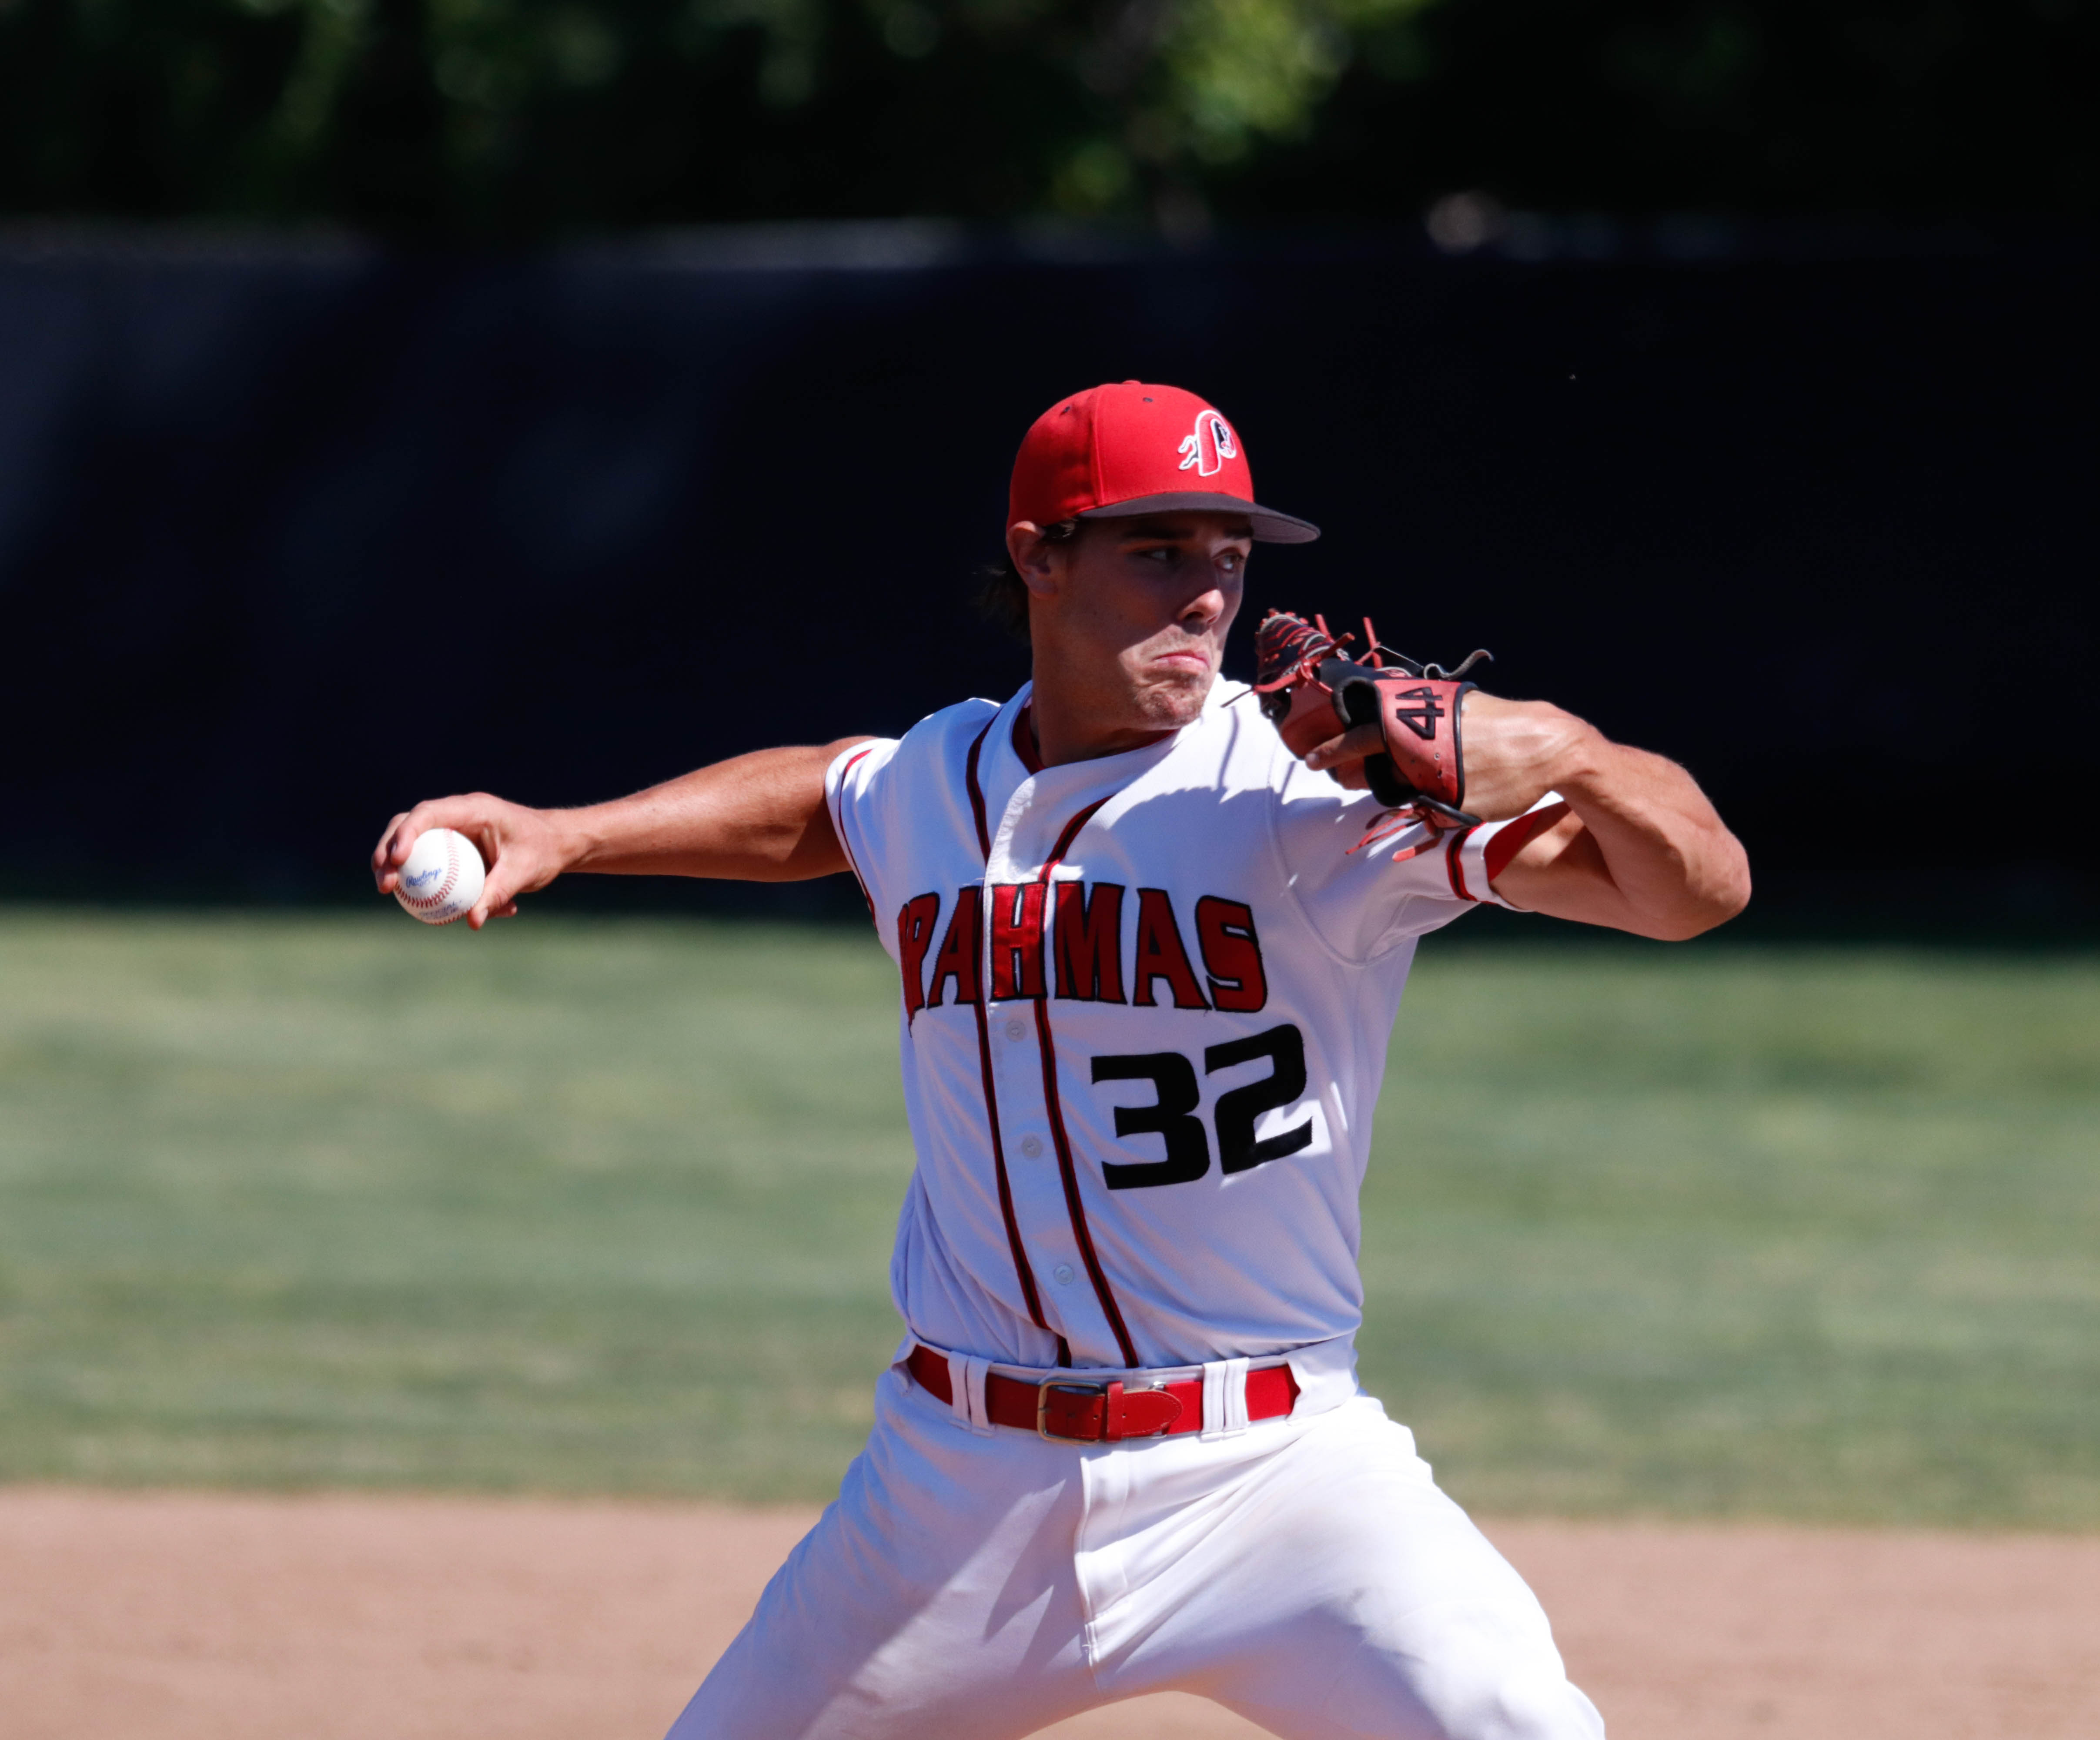 BRIEF: Former Brahma drafted to the Minnesota Twins